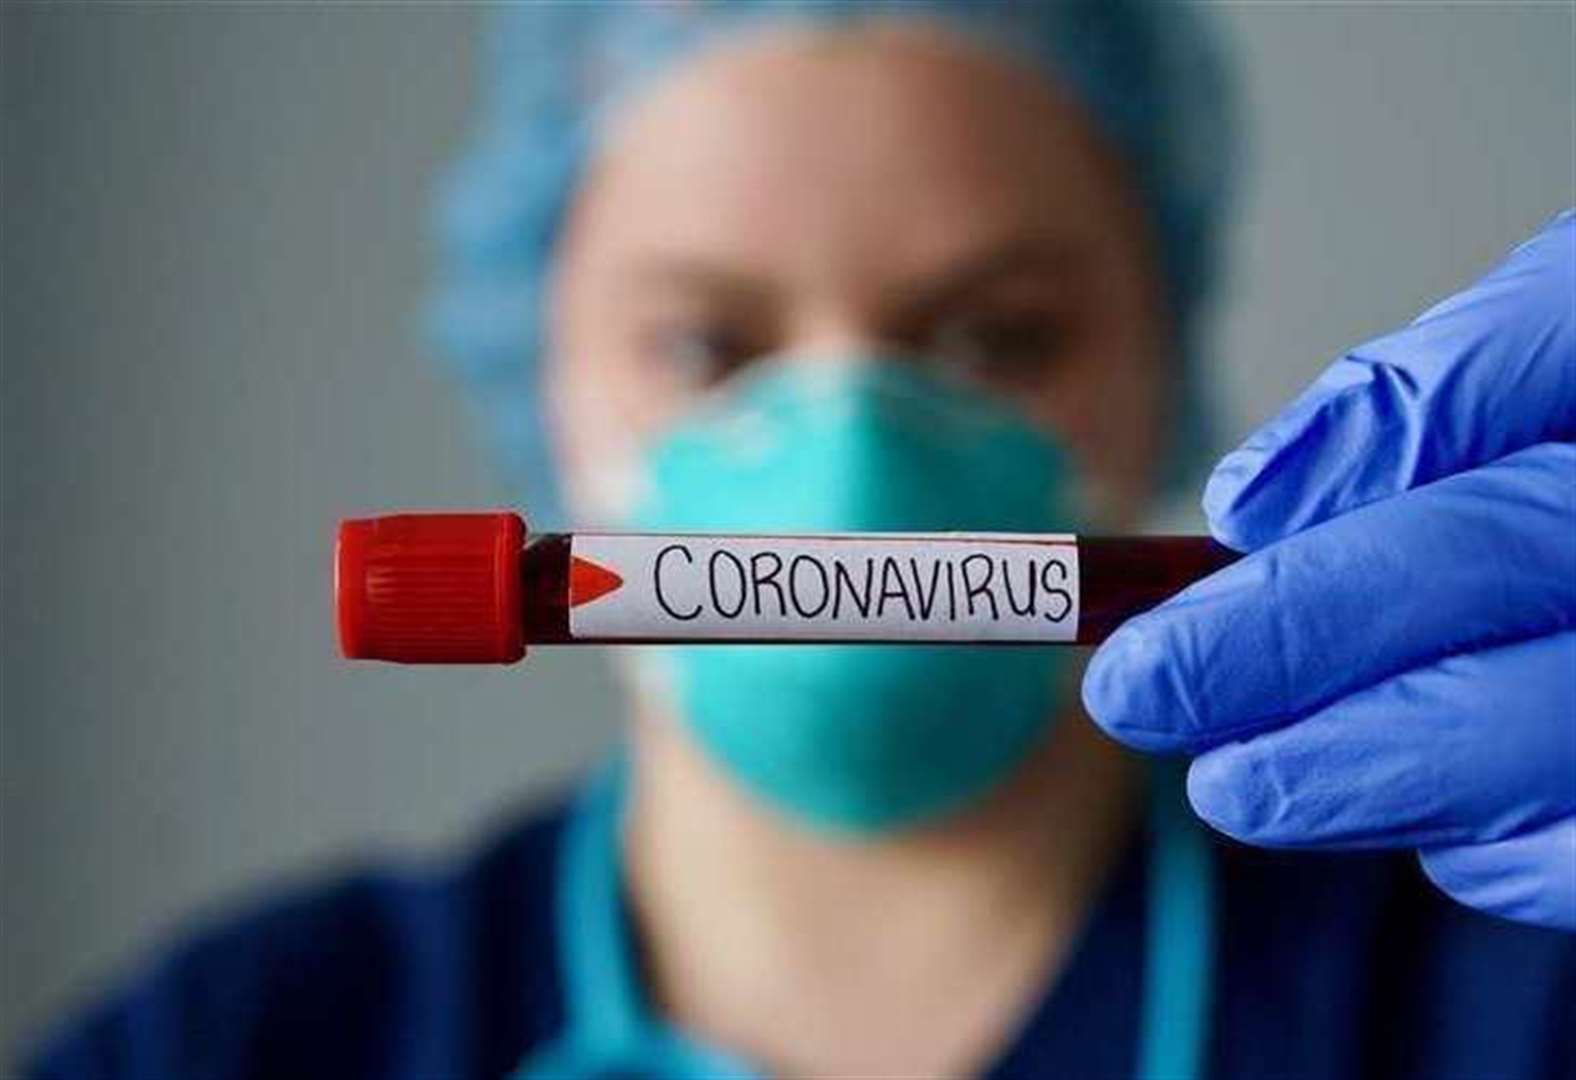 Coronavirus: Number of confirmed cases across Suffolk now stands at 42